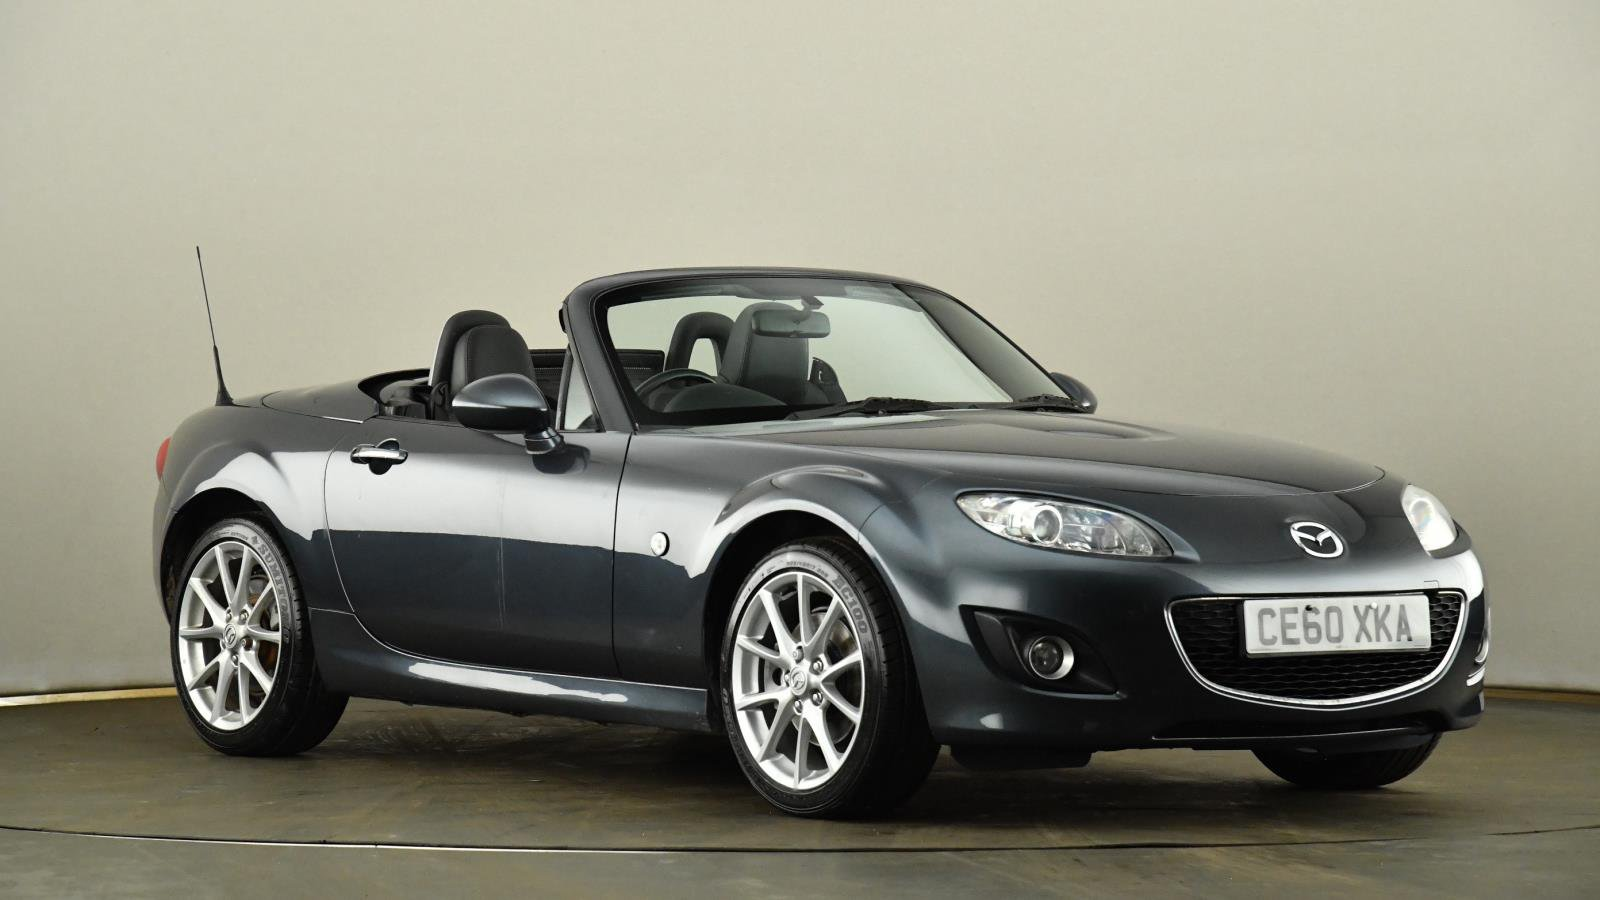 Mazda Mx5 For Sale >> Used Mazda Mx 5 Cars For Sale Carshop Carshop